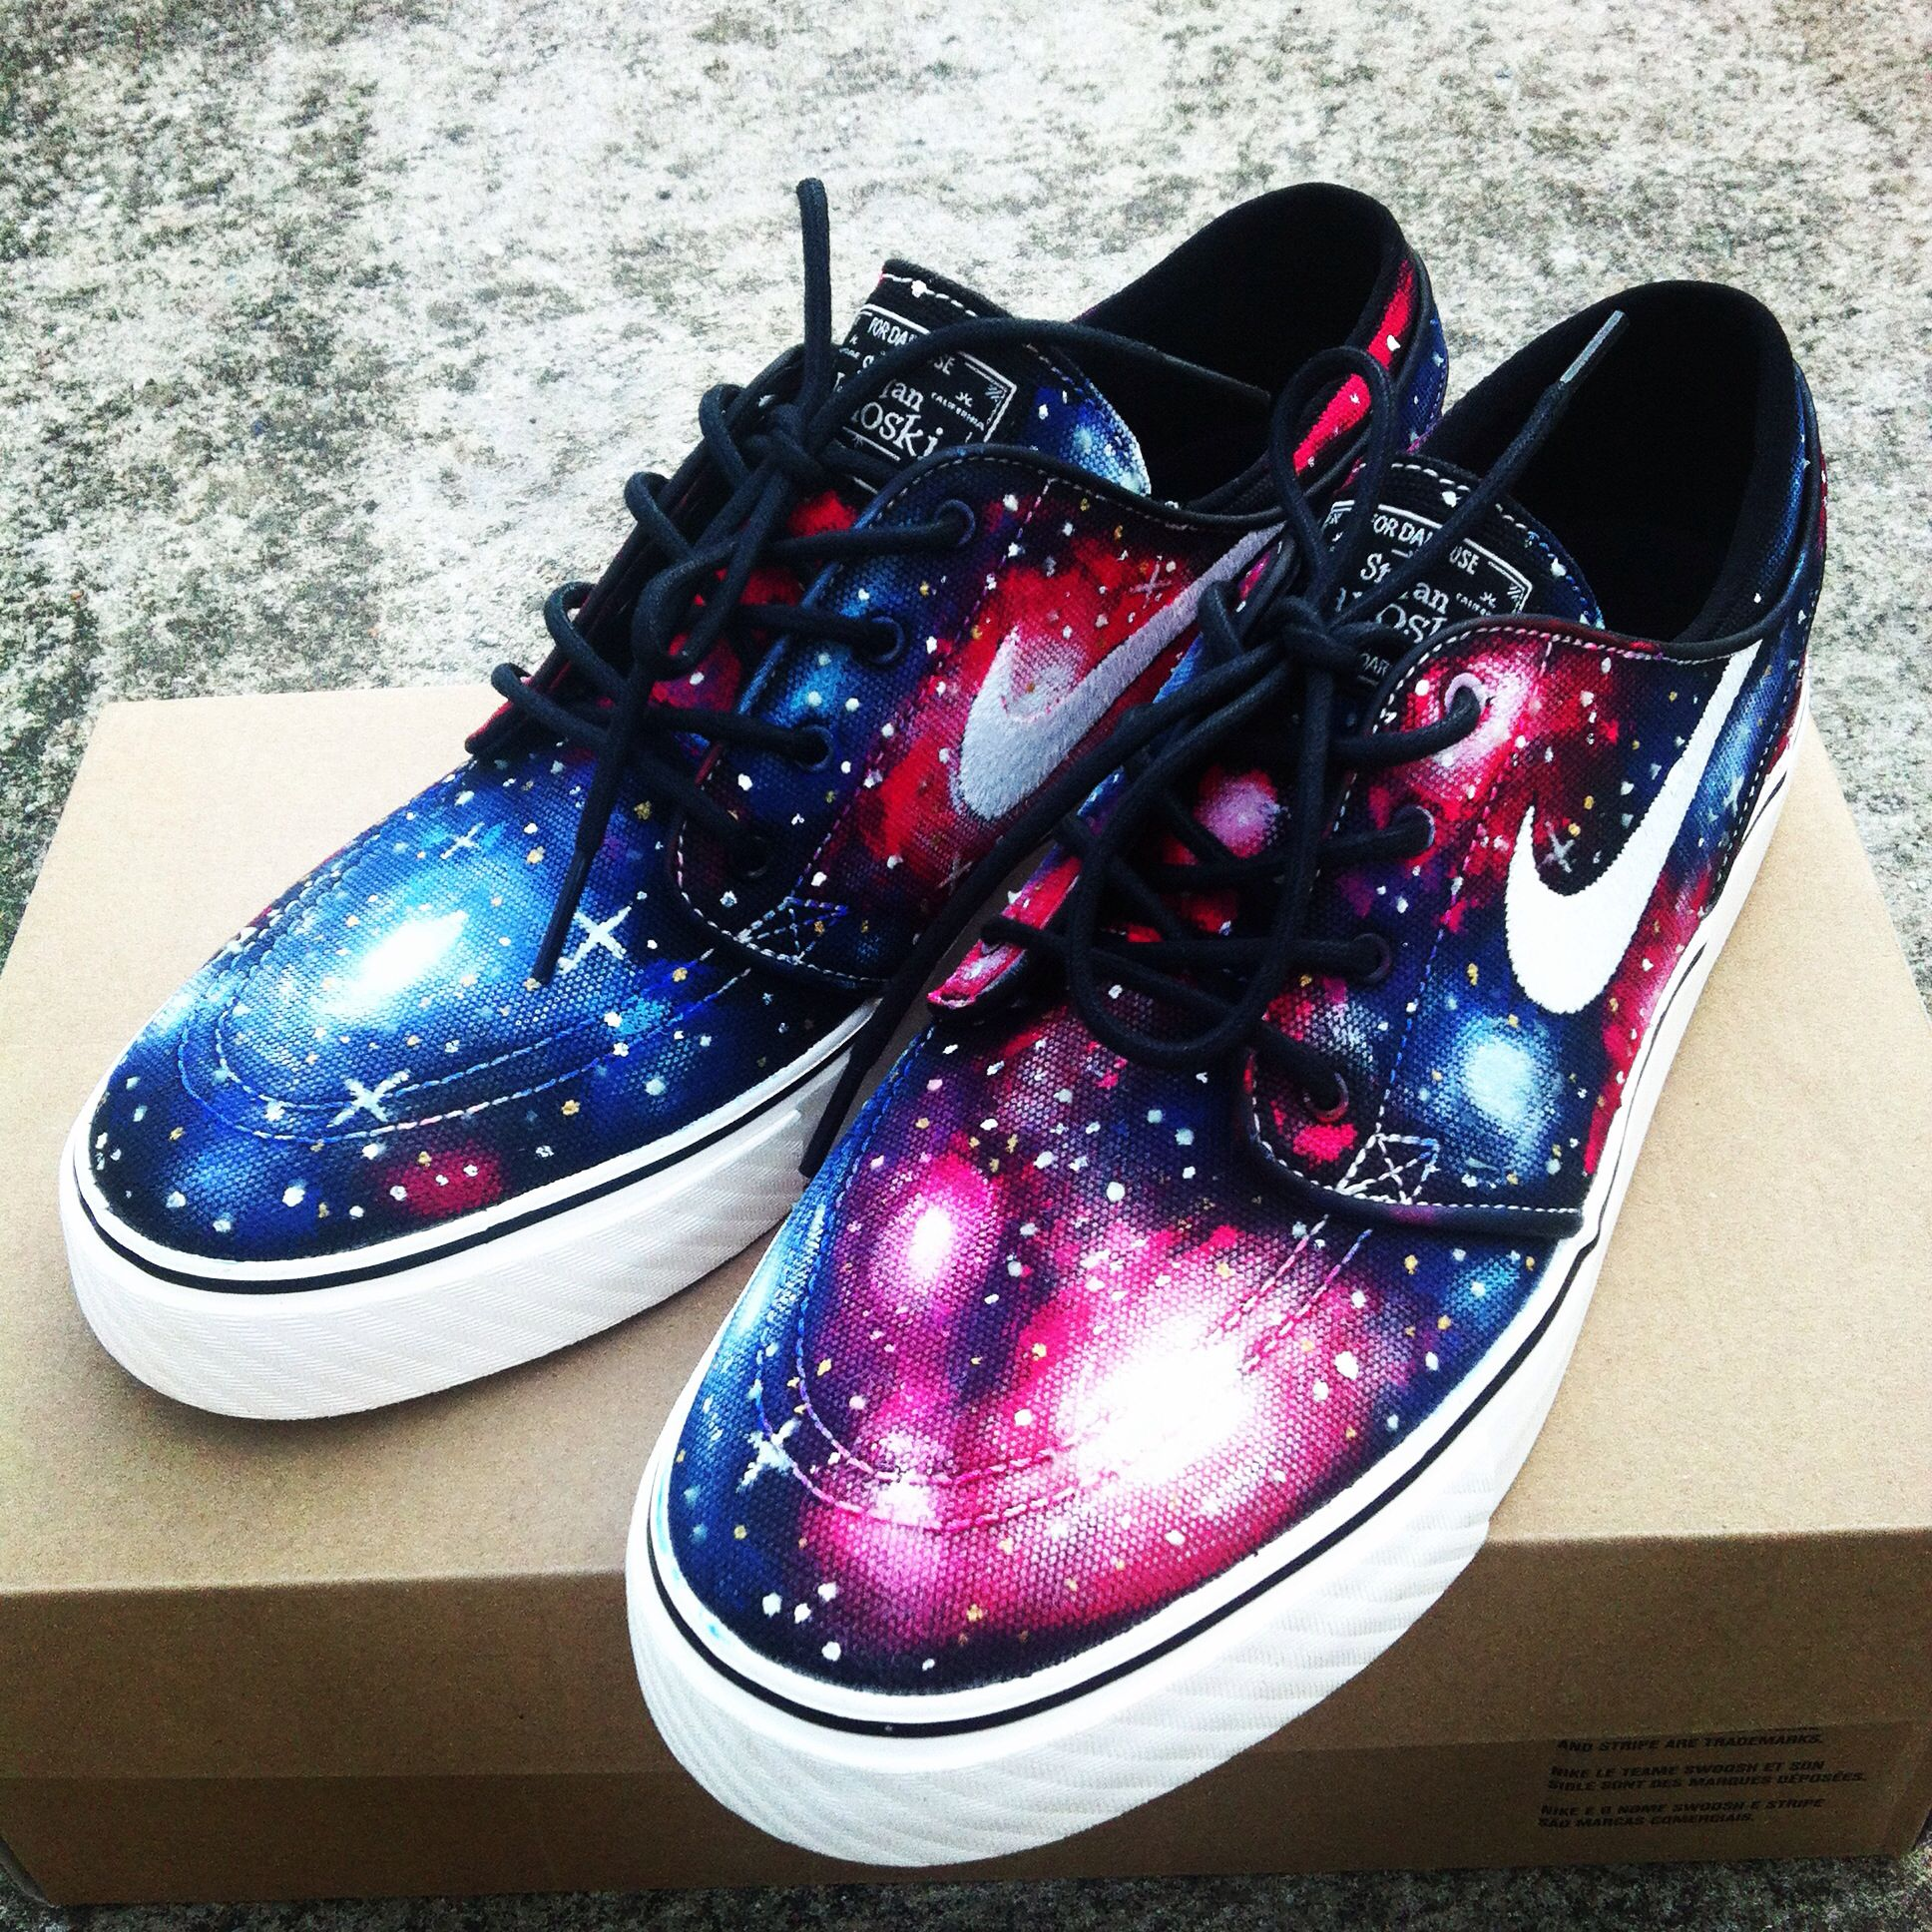 Nike Janoski Galaxy Shoes